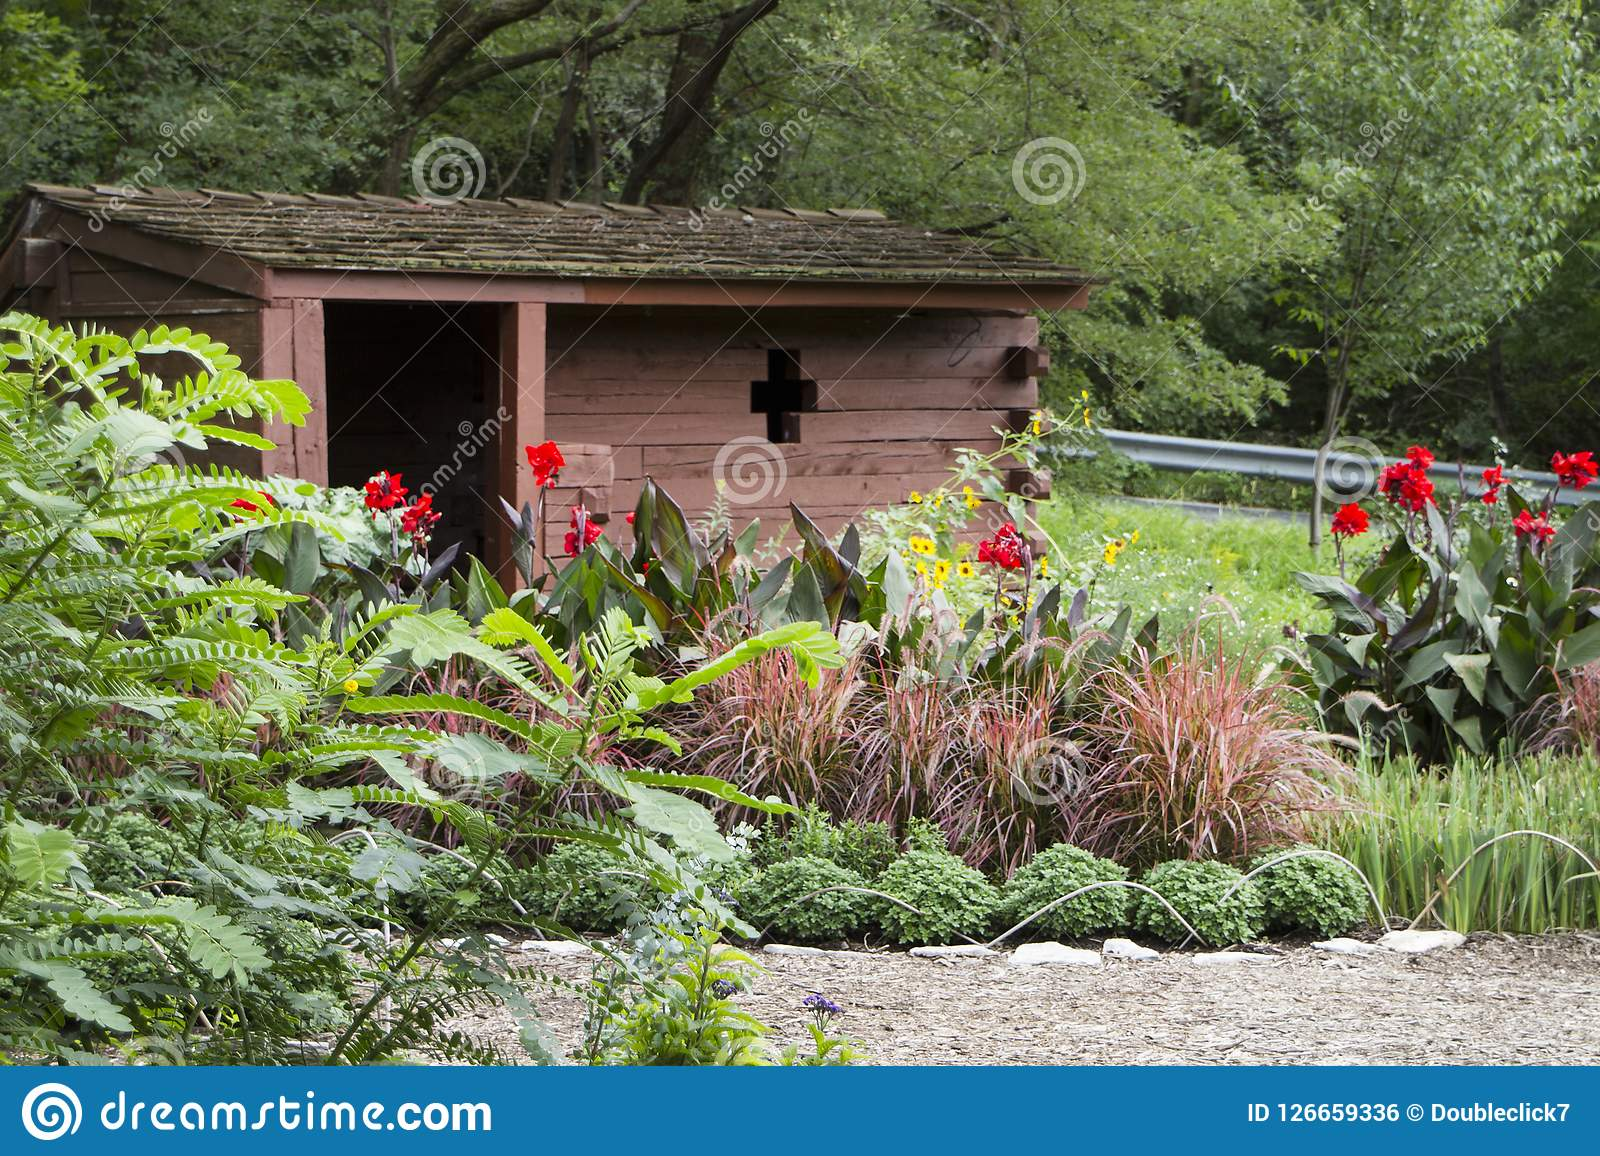 Lauritzen Gardens, Omaha, Nebraska, Rustic Shed With Flowers And Shrubs